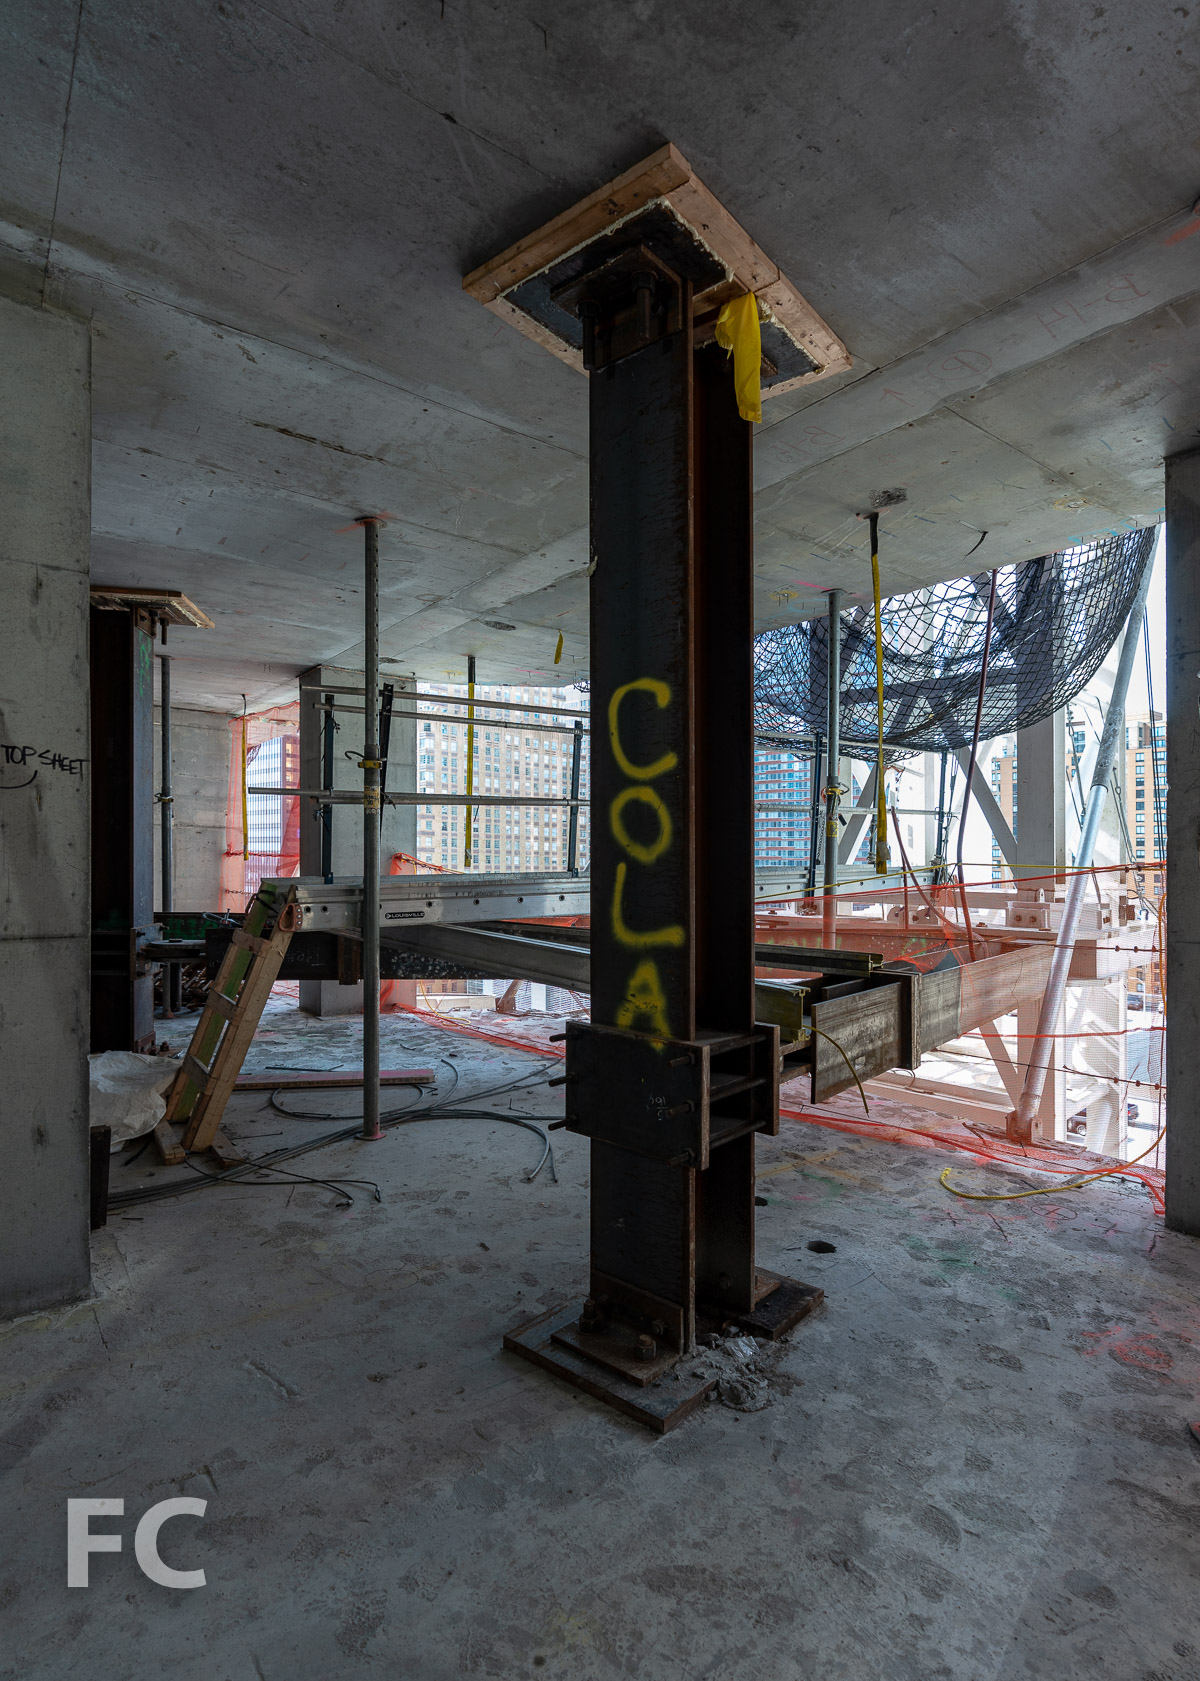 Tower crane support at a lower tower floor.